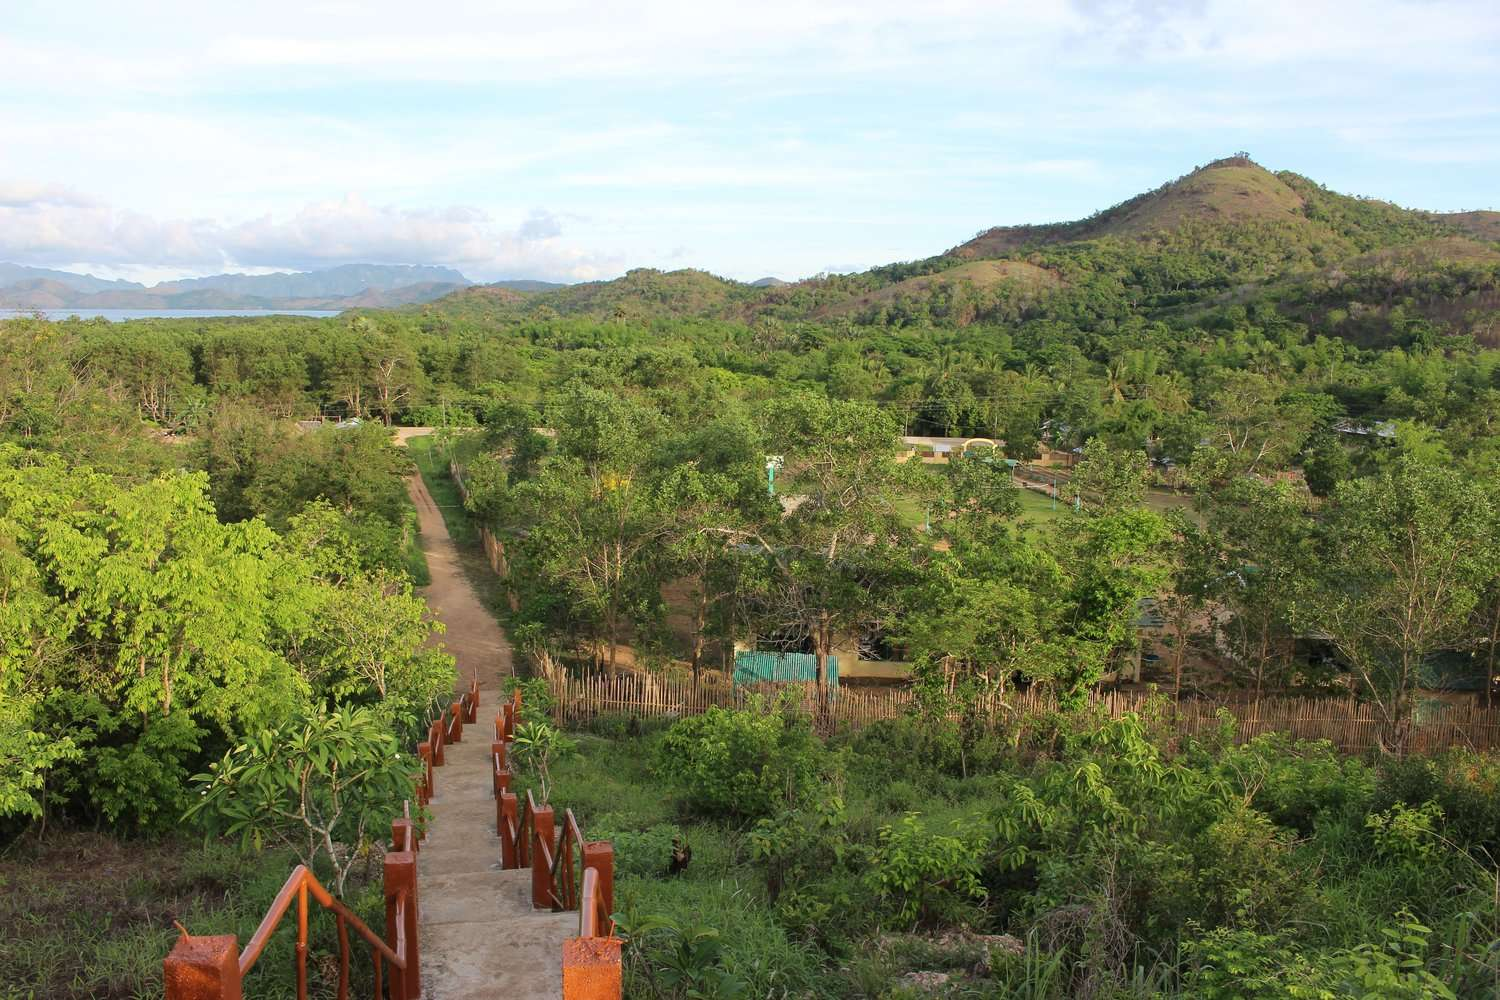 view over a lush green rainforest with hills and the sea in the distance, in Coron, Philippines